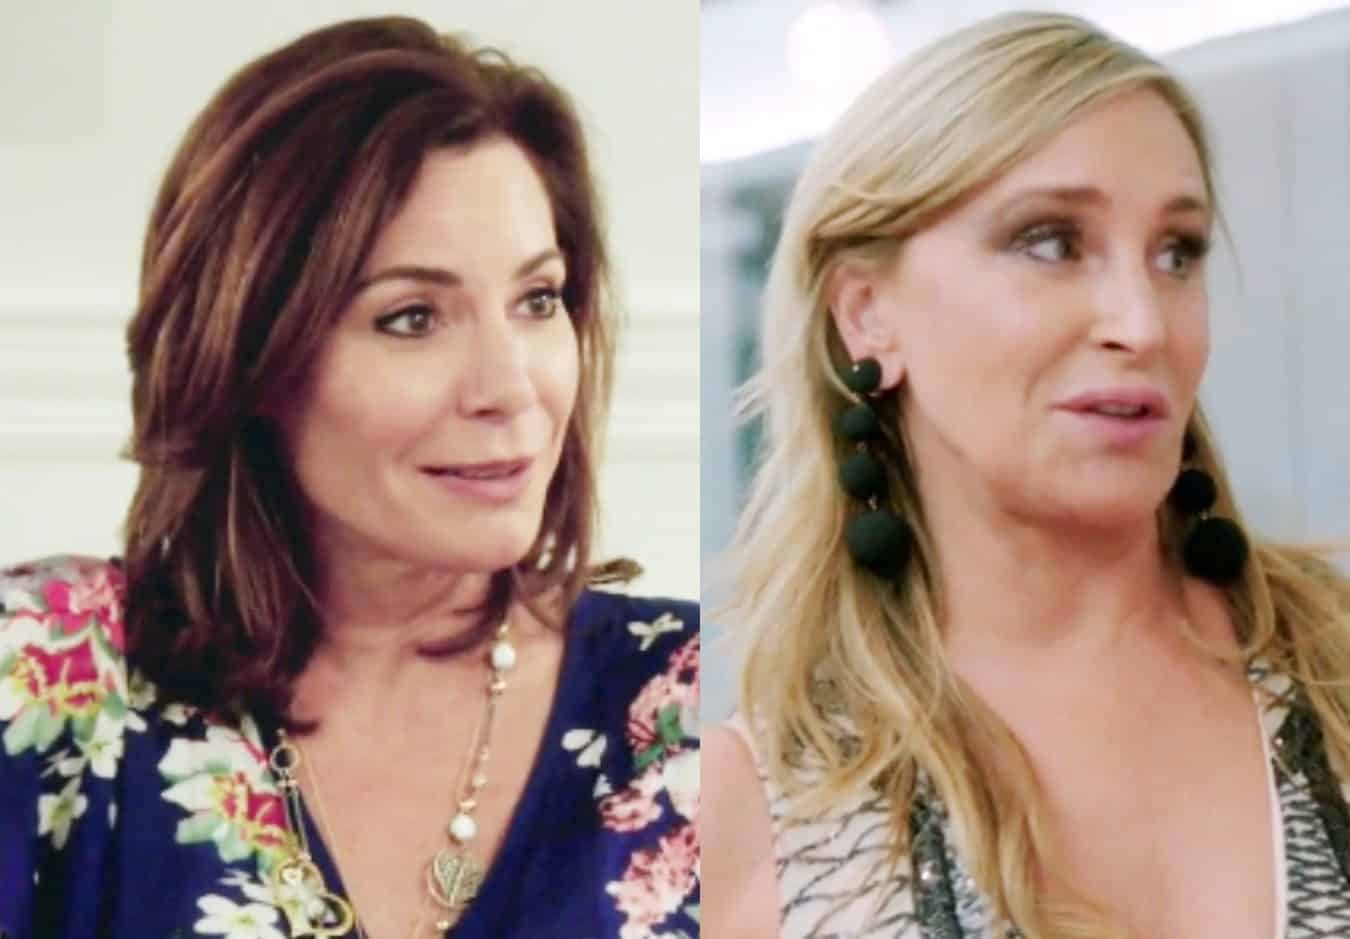 RHONY Recap: Luann Angrily Leaves Ramona's Home Due to Room as Sonja Gets Upset Over 'Trophy Wife' Dig